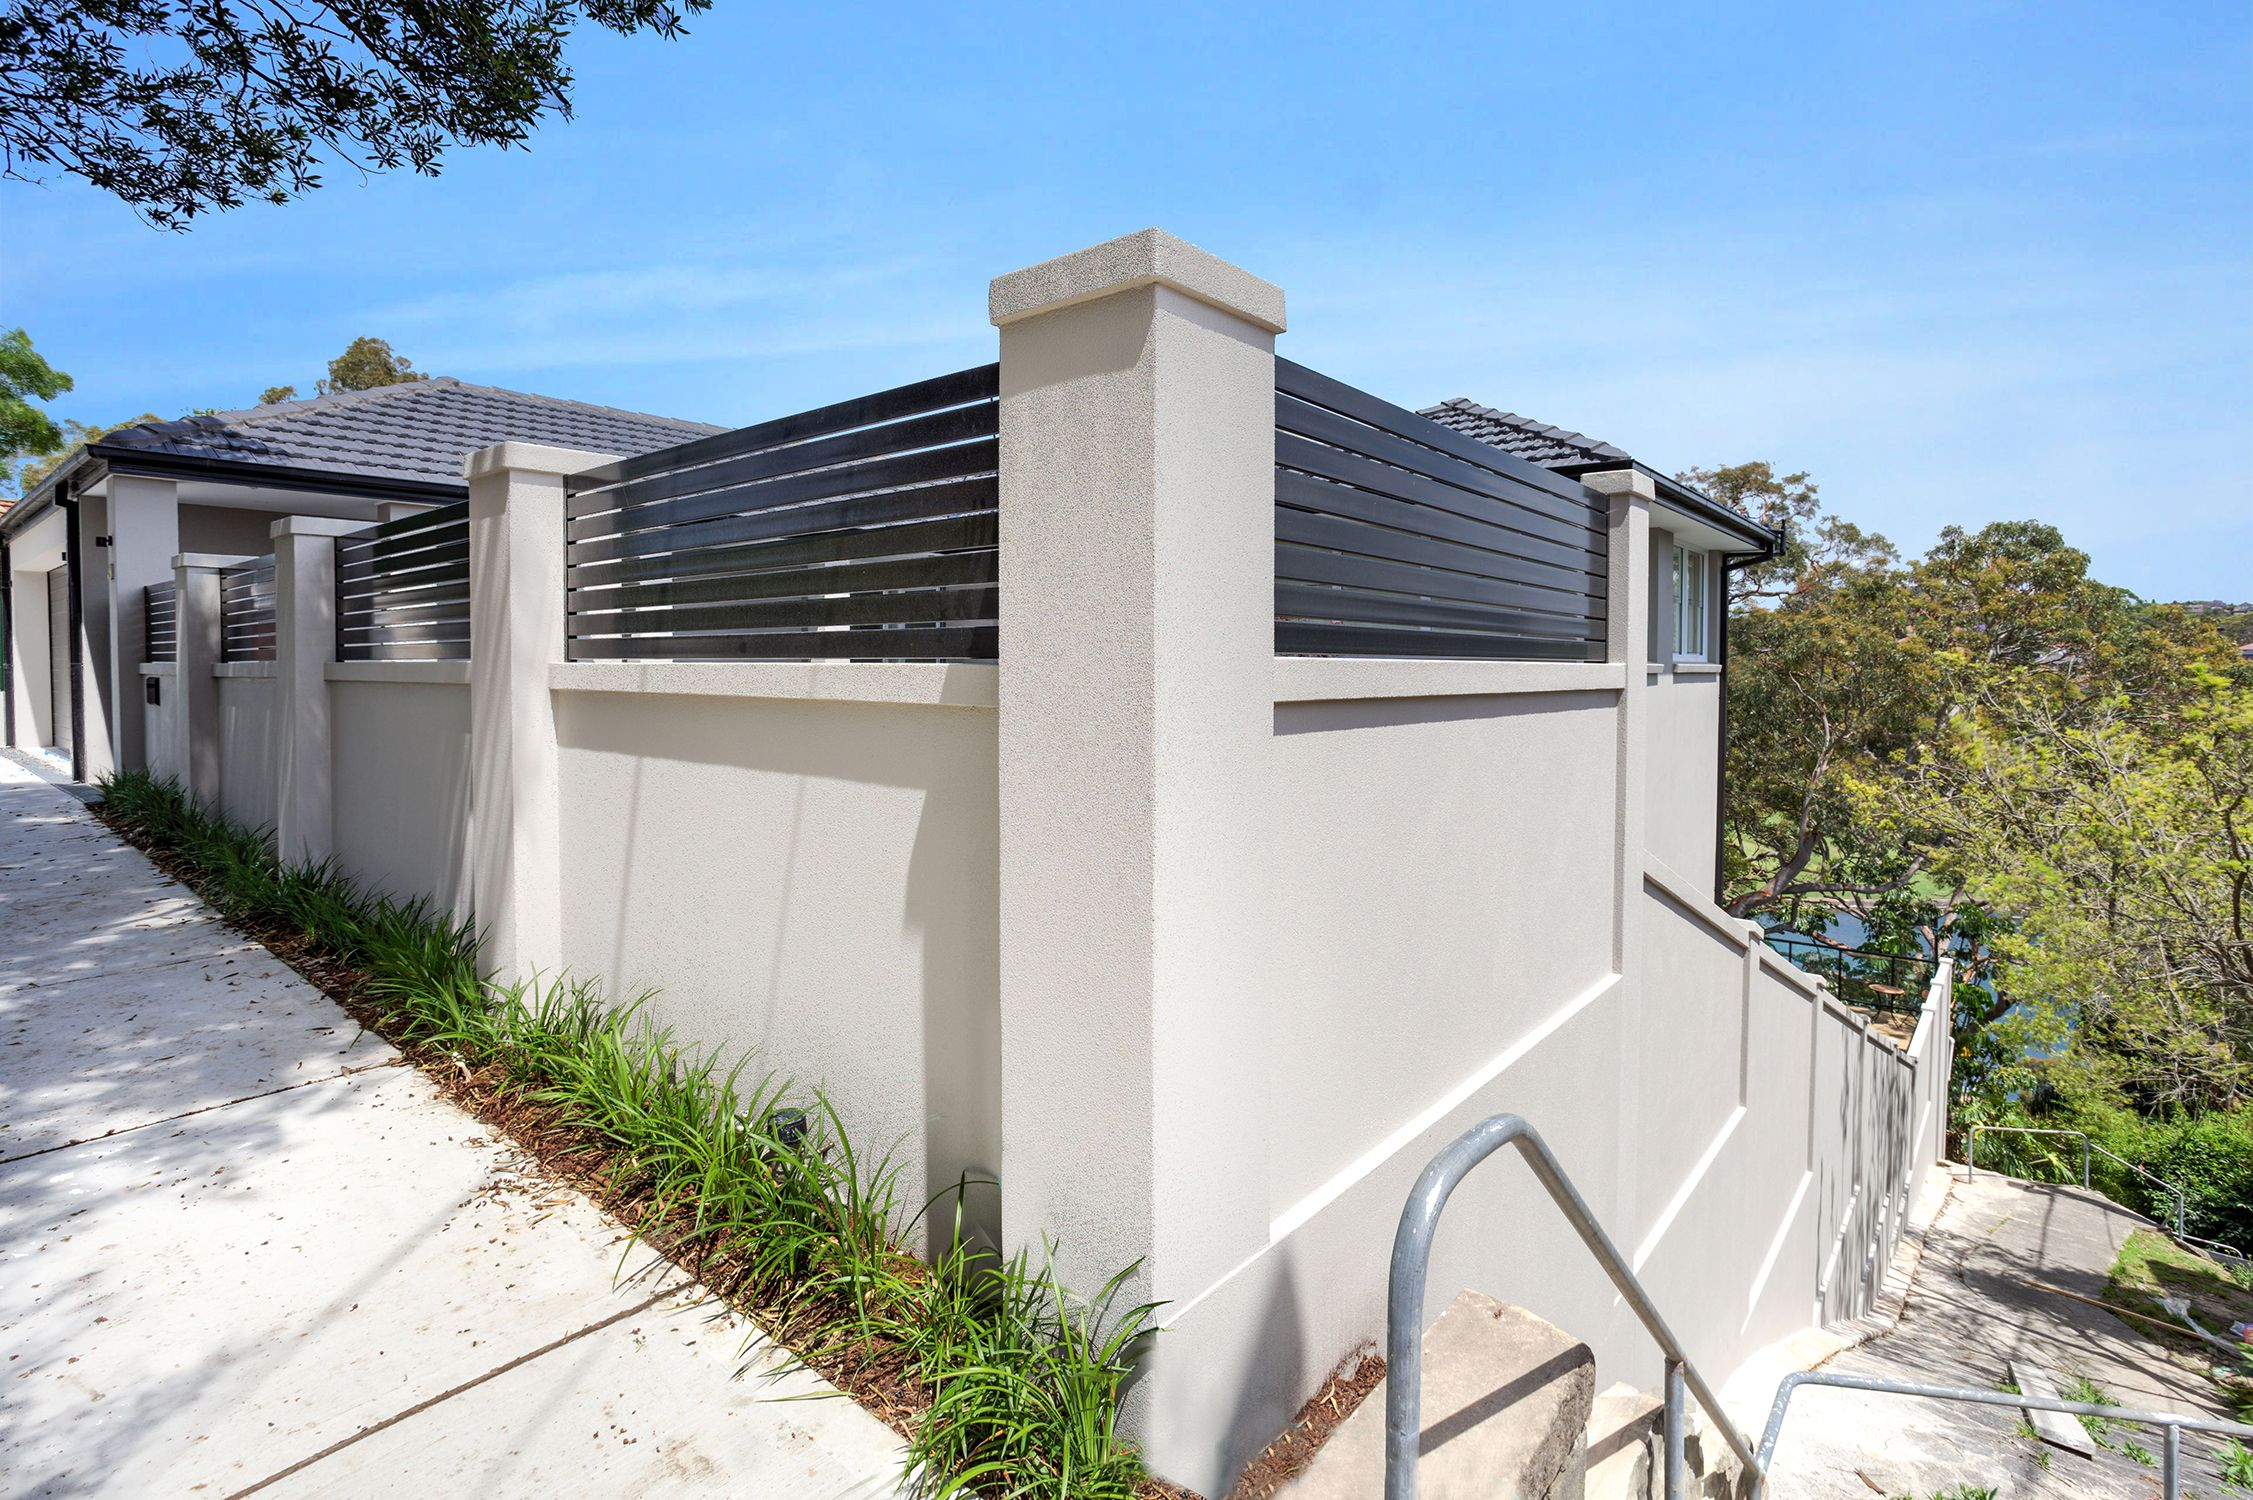 Corner Blocks Dont Have To Be A Hassle With The Ease Of Installing A Diy Modular Wall System Fence Gate Design Fence Design Concrete Block Walls